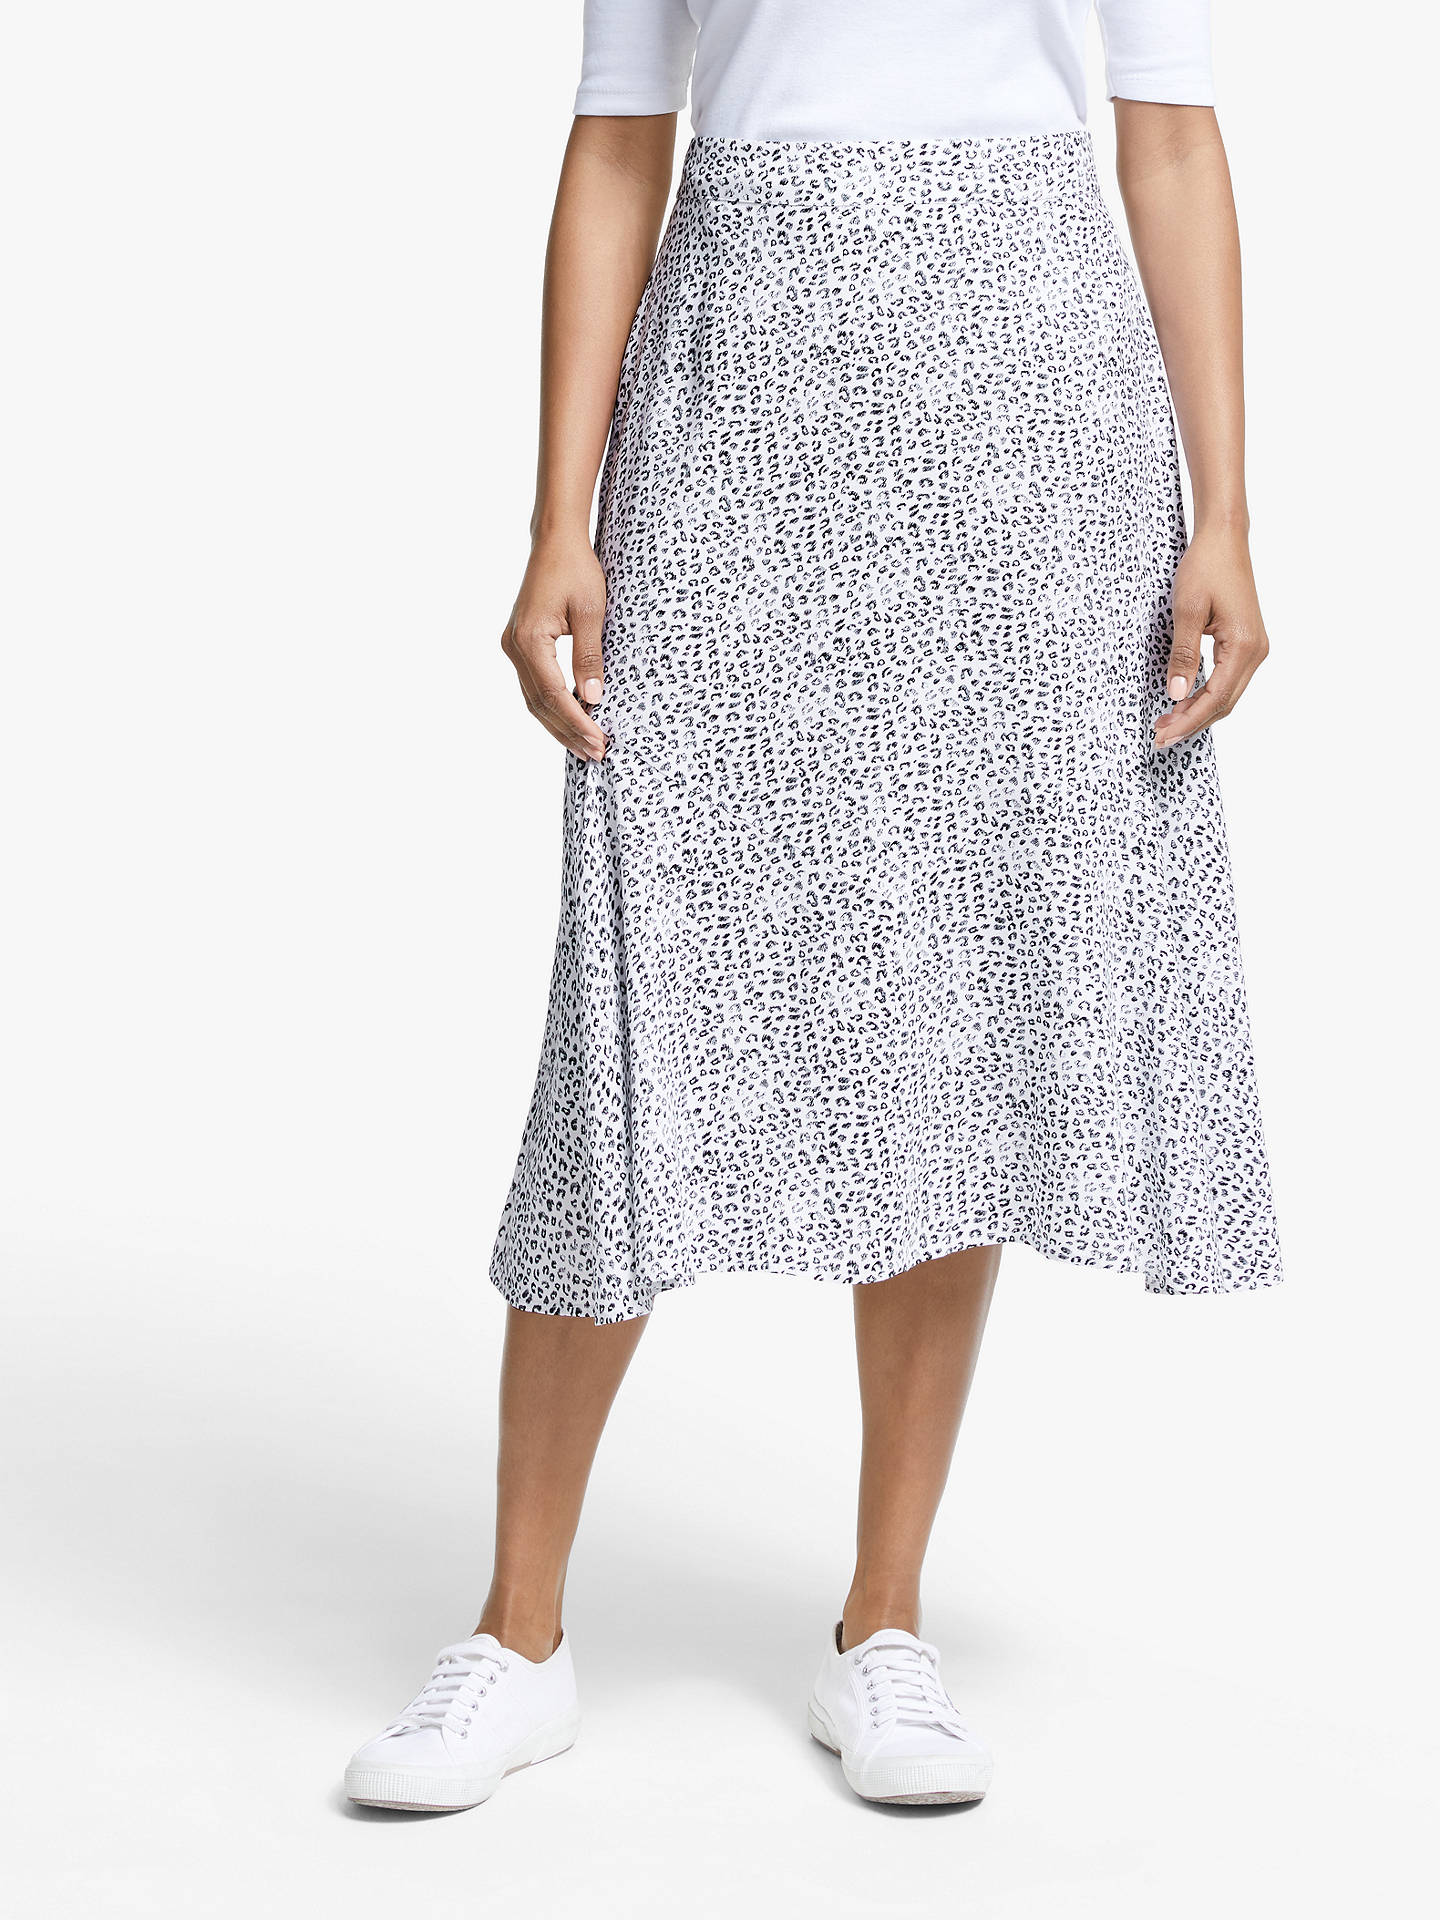 145a2fce1 Buy Collection WEEKEND by John Lewis Leopard Print Midi Skirt, White/Black,  16 ...